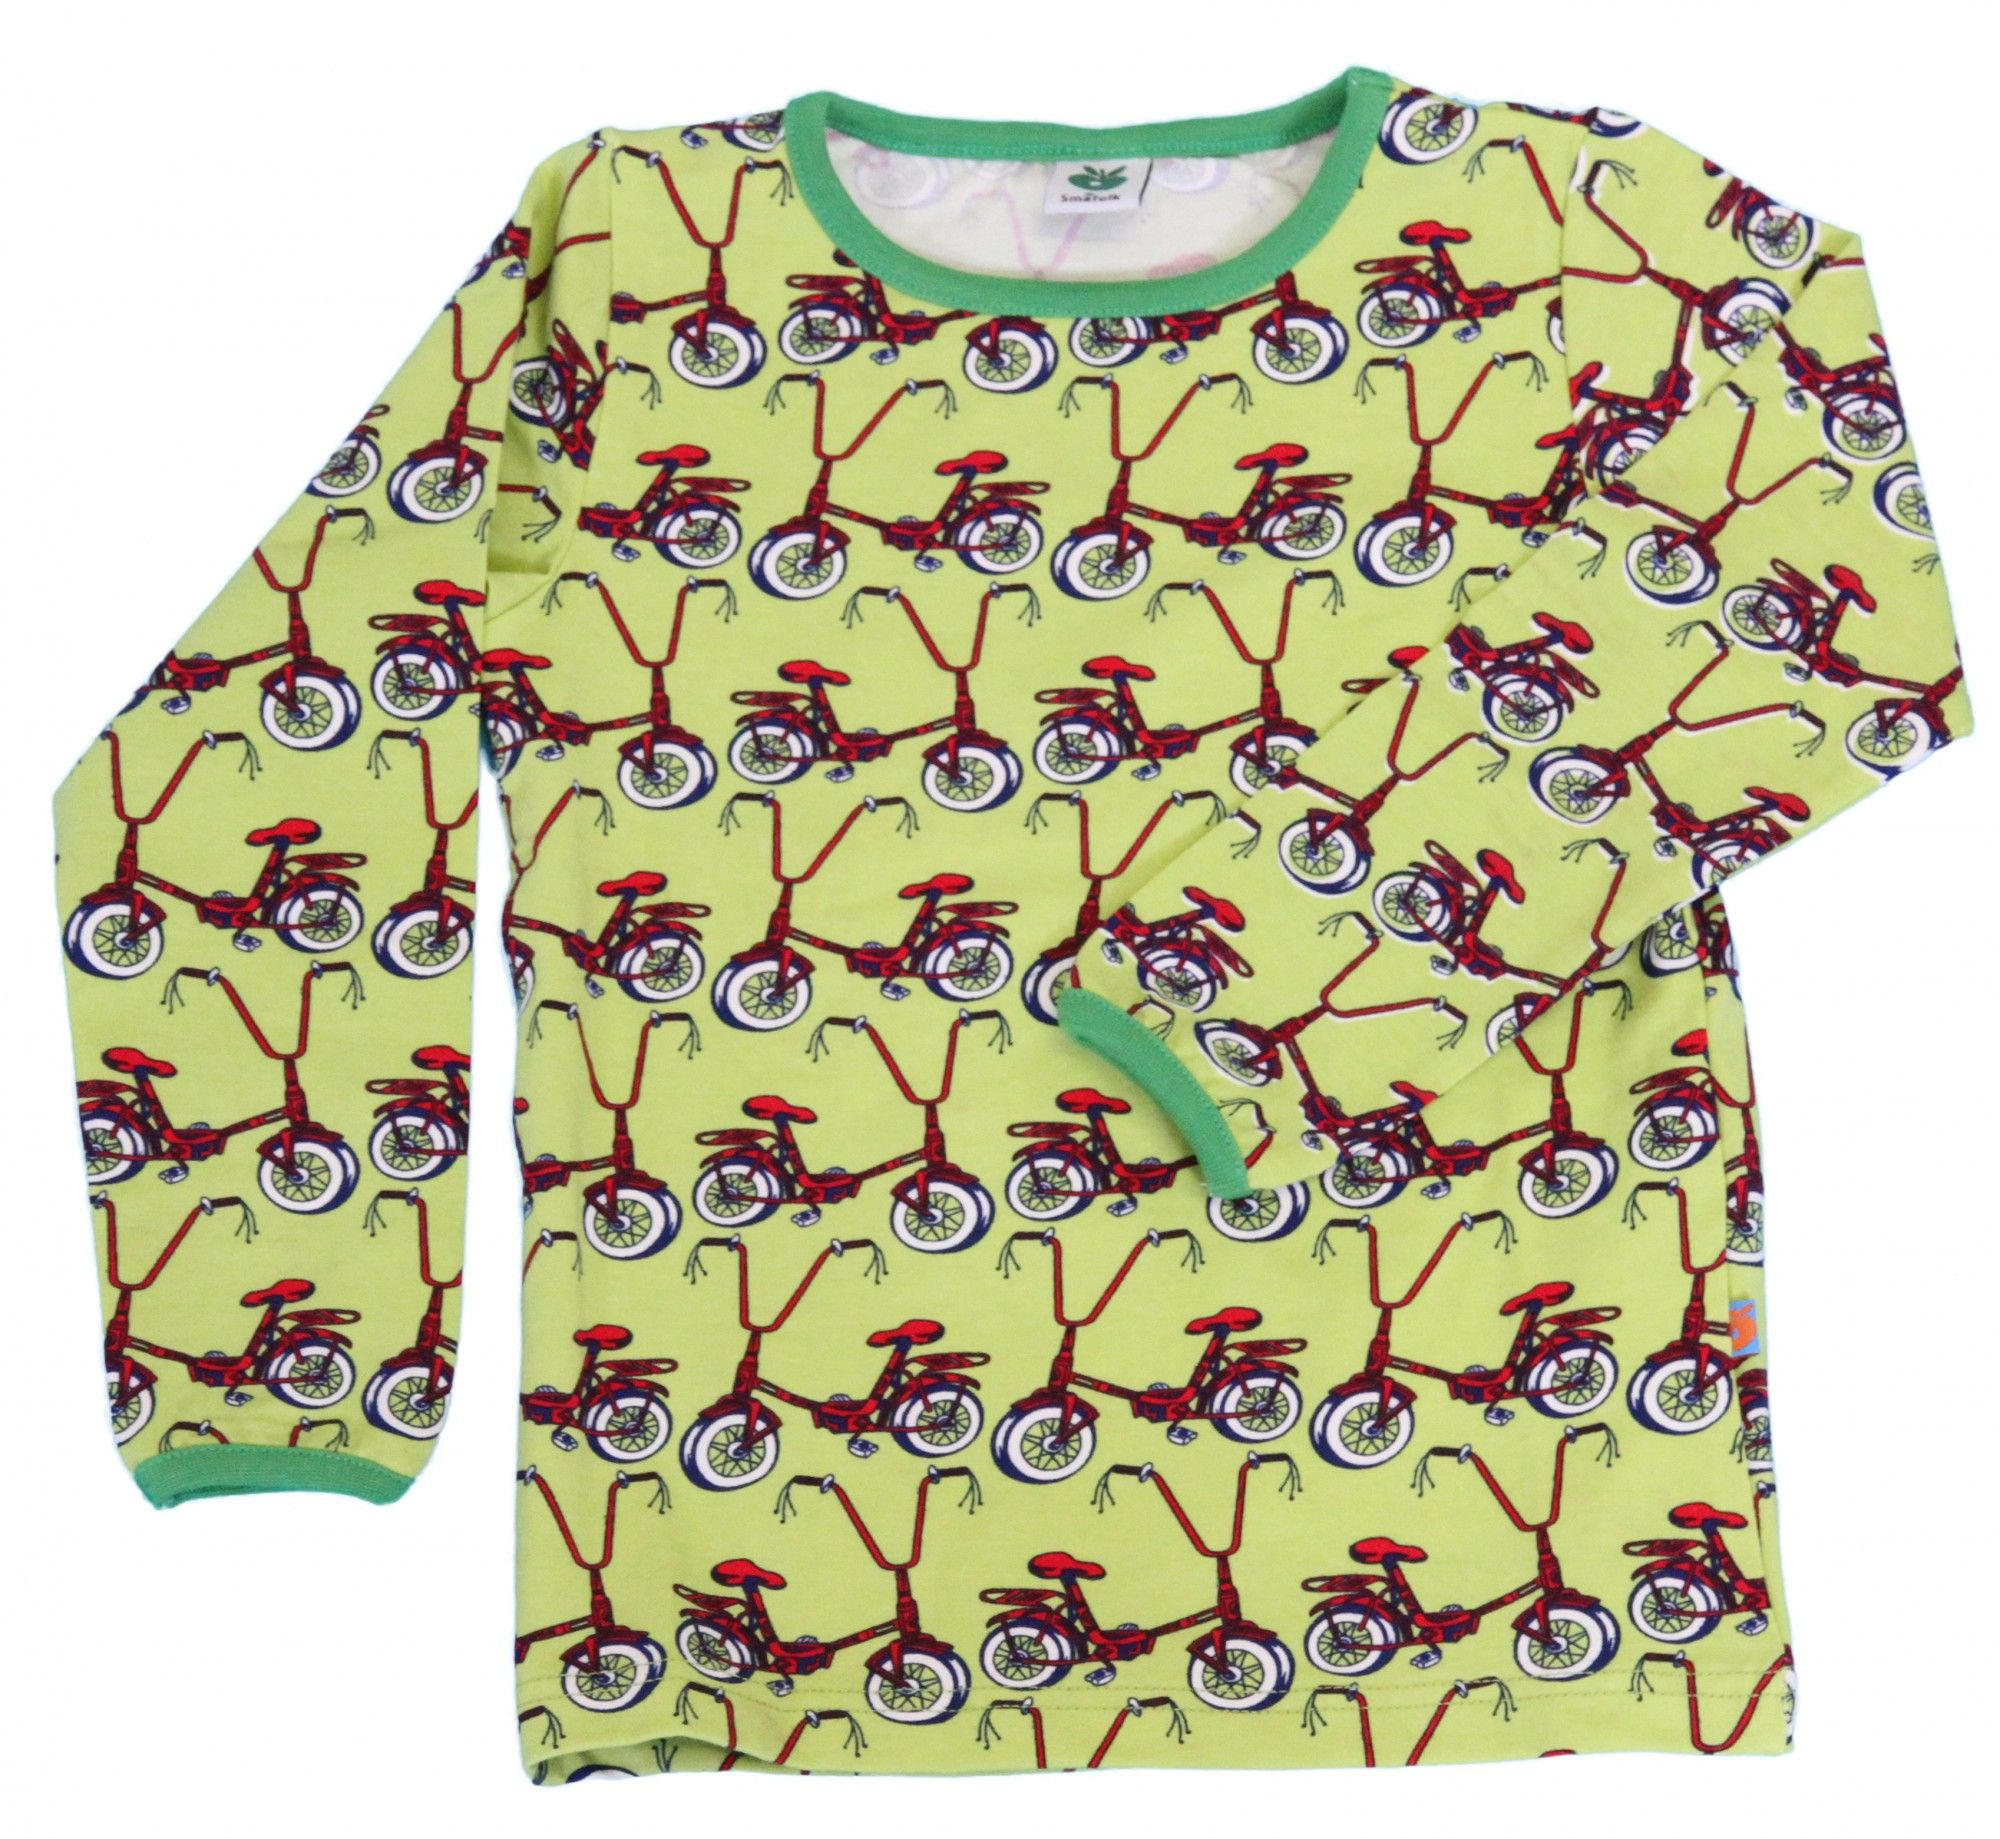 Smafolk Low Rider Bike Top New season fashion has just arrived from